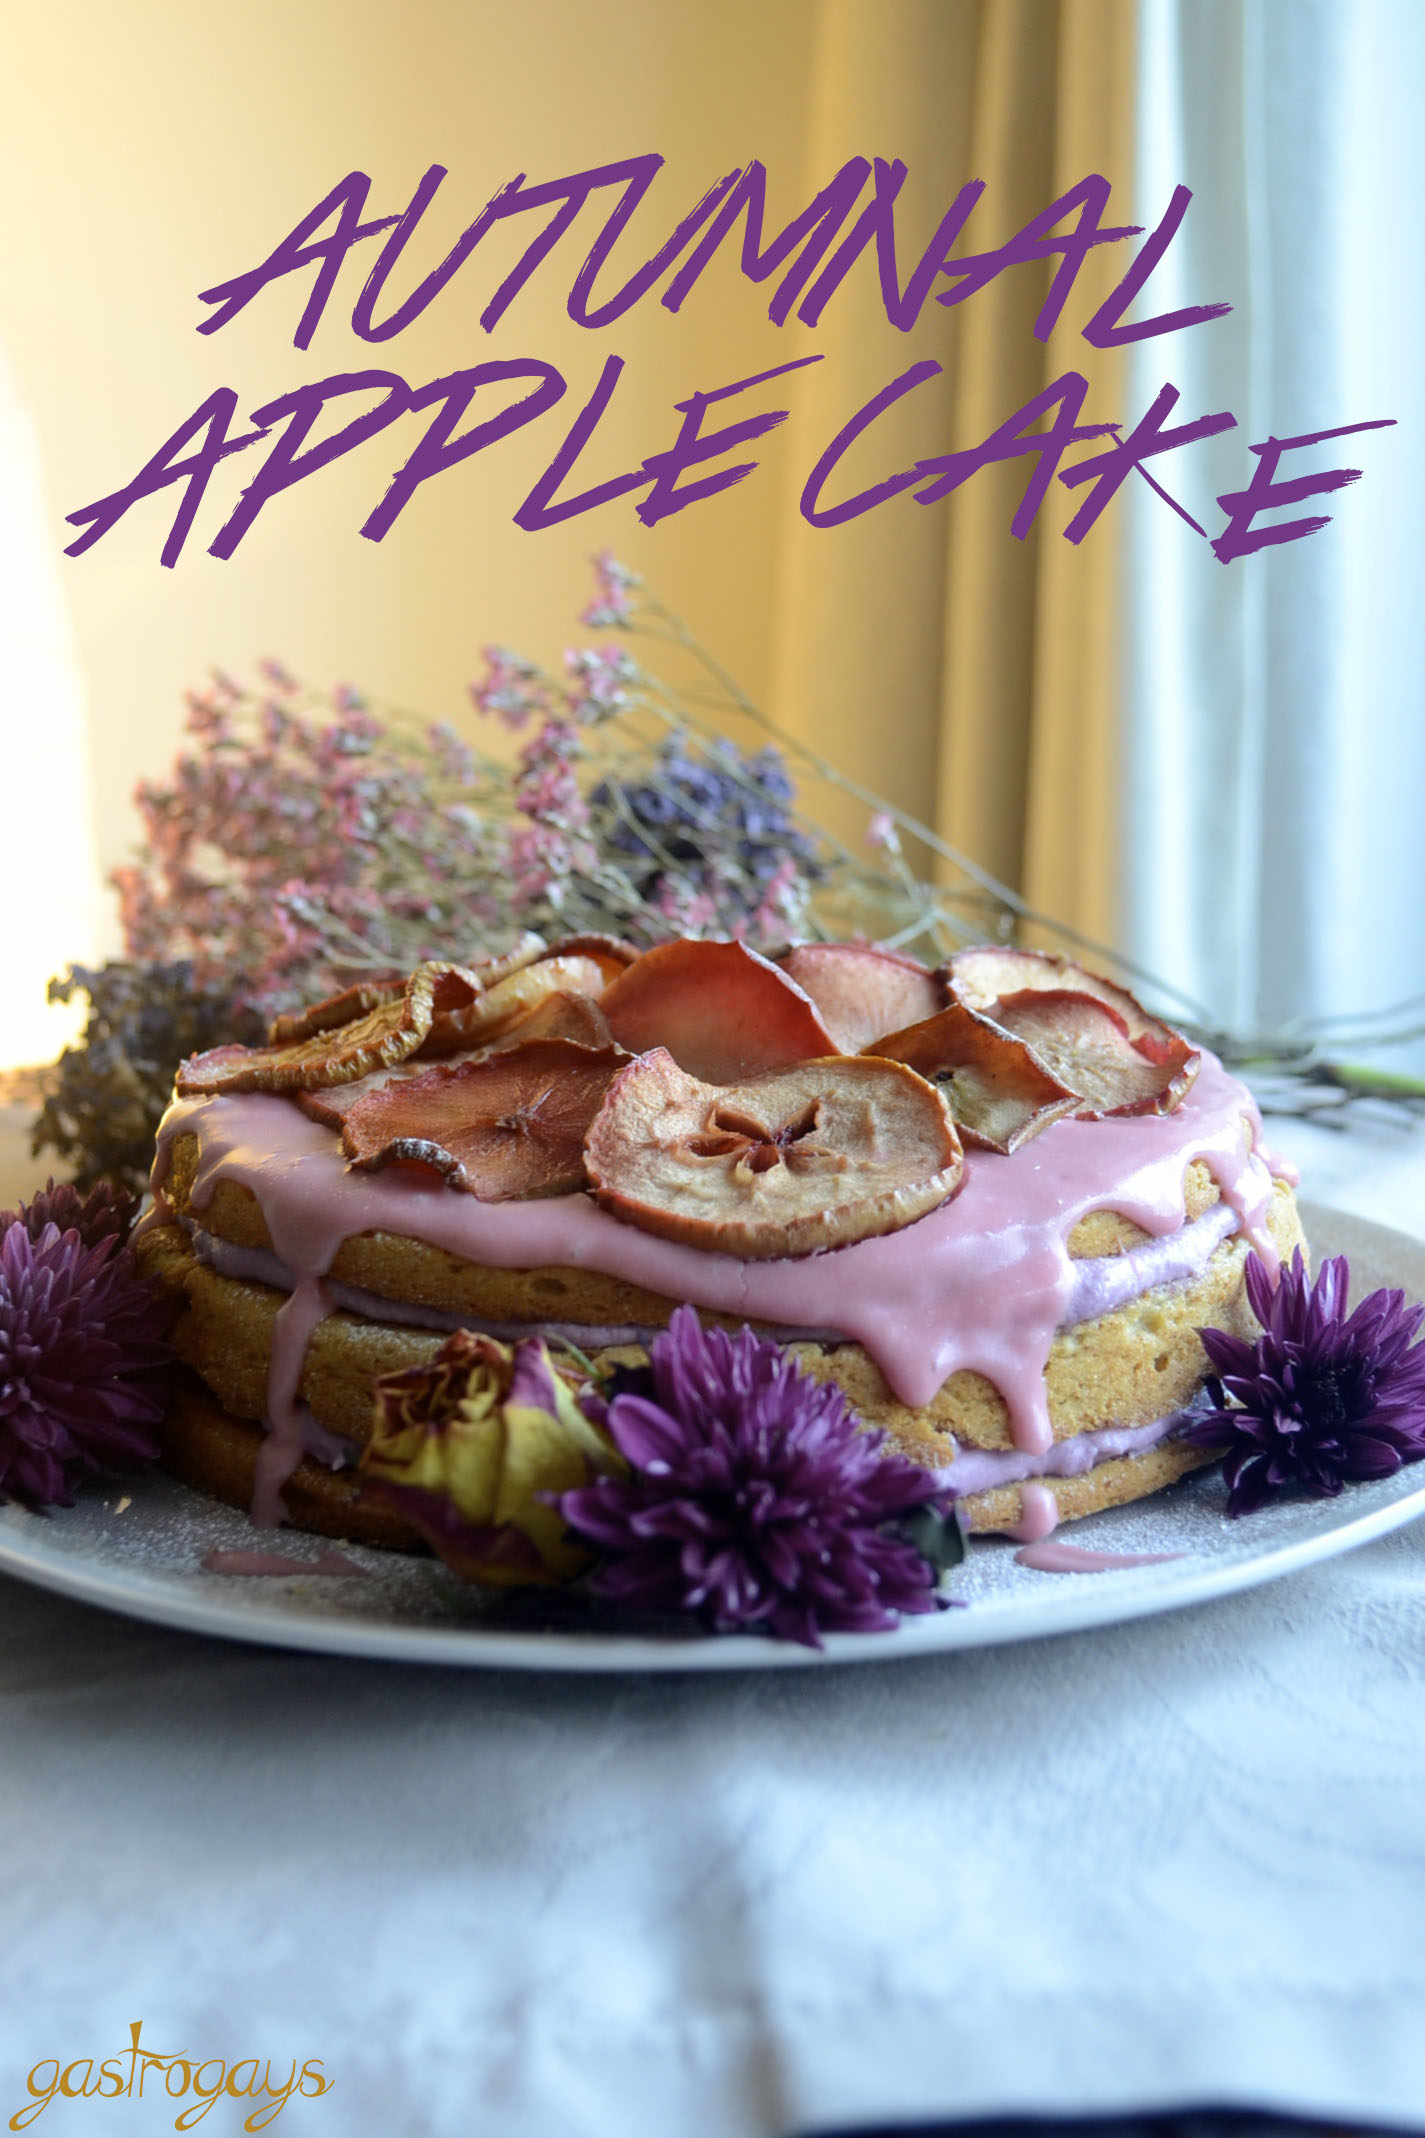 autumnal apple cake, floral cake, apple slice cake, apple cake, pink icing, purple buttercream